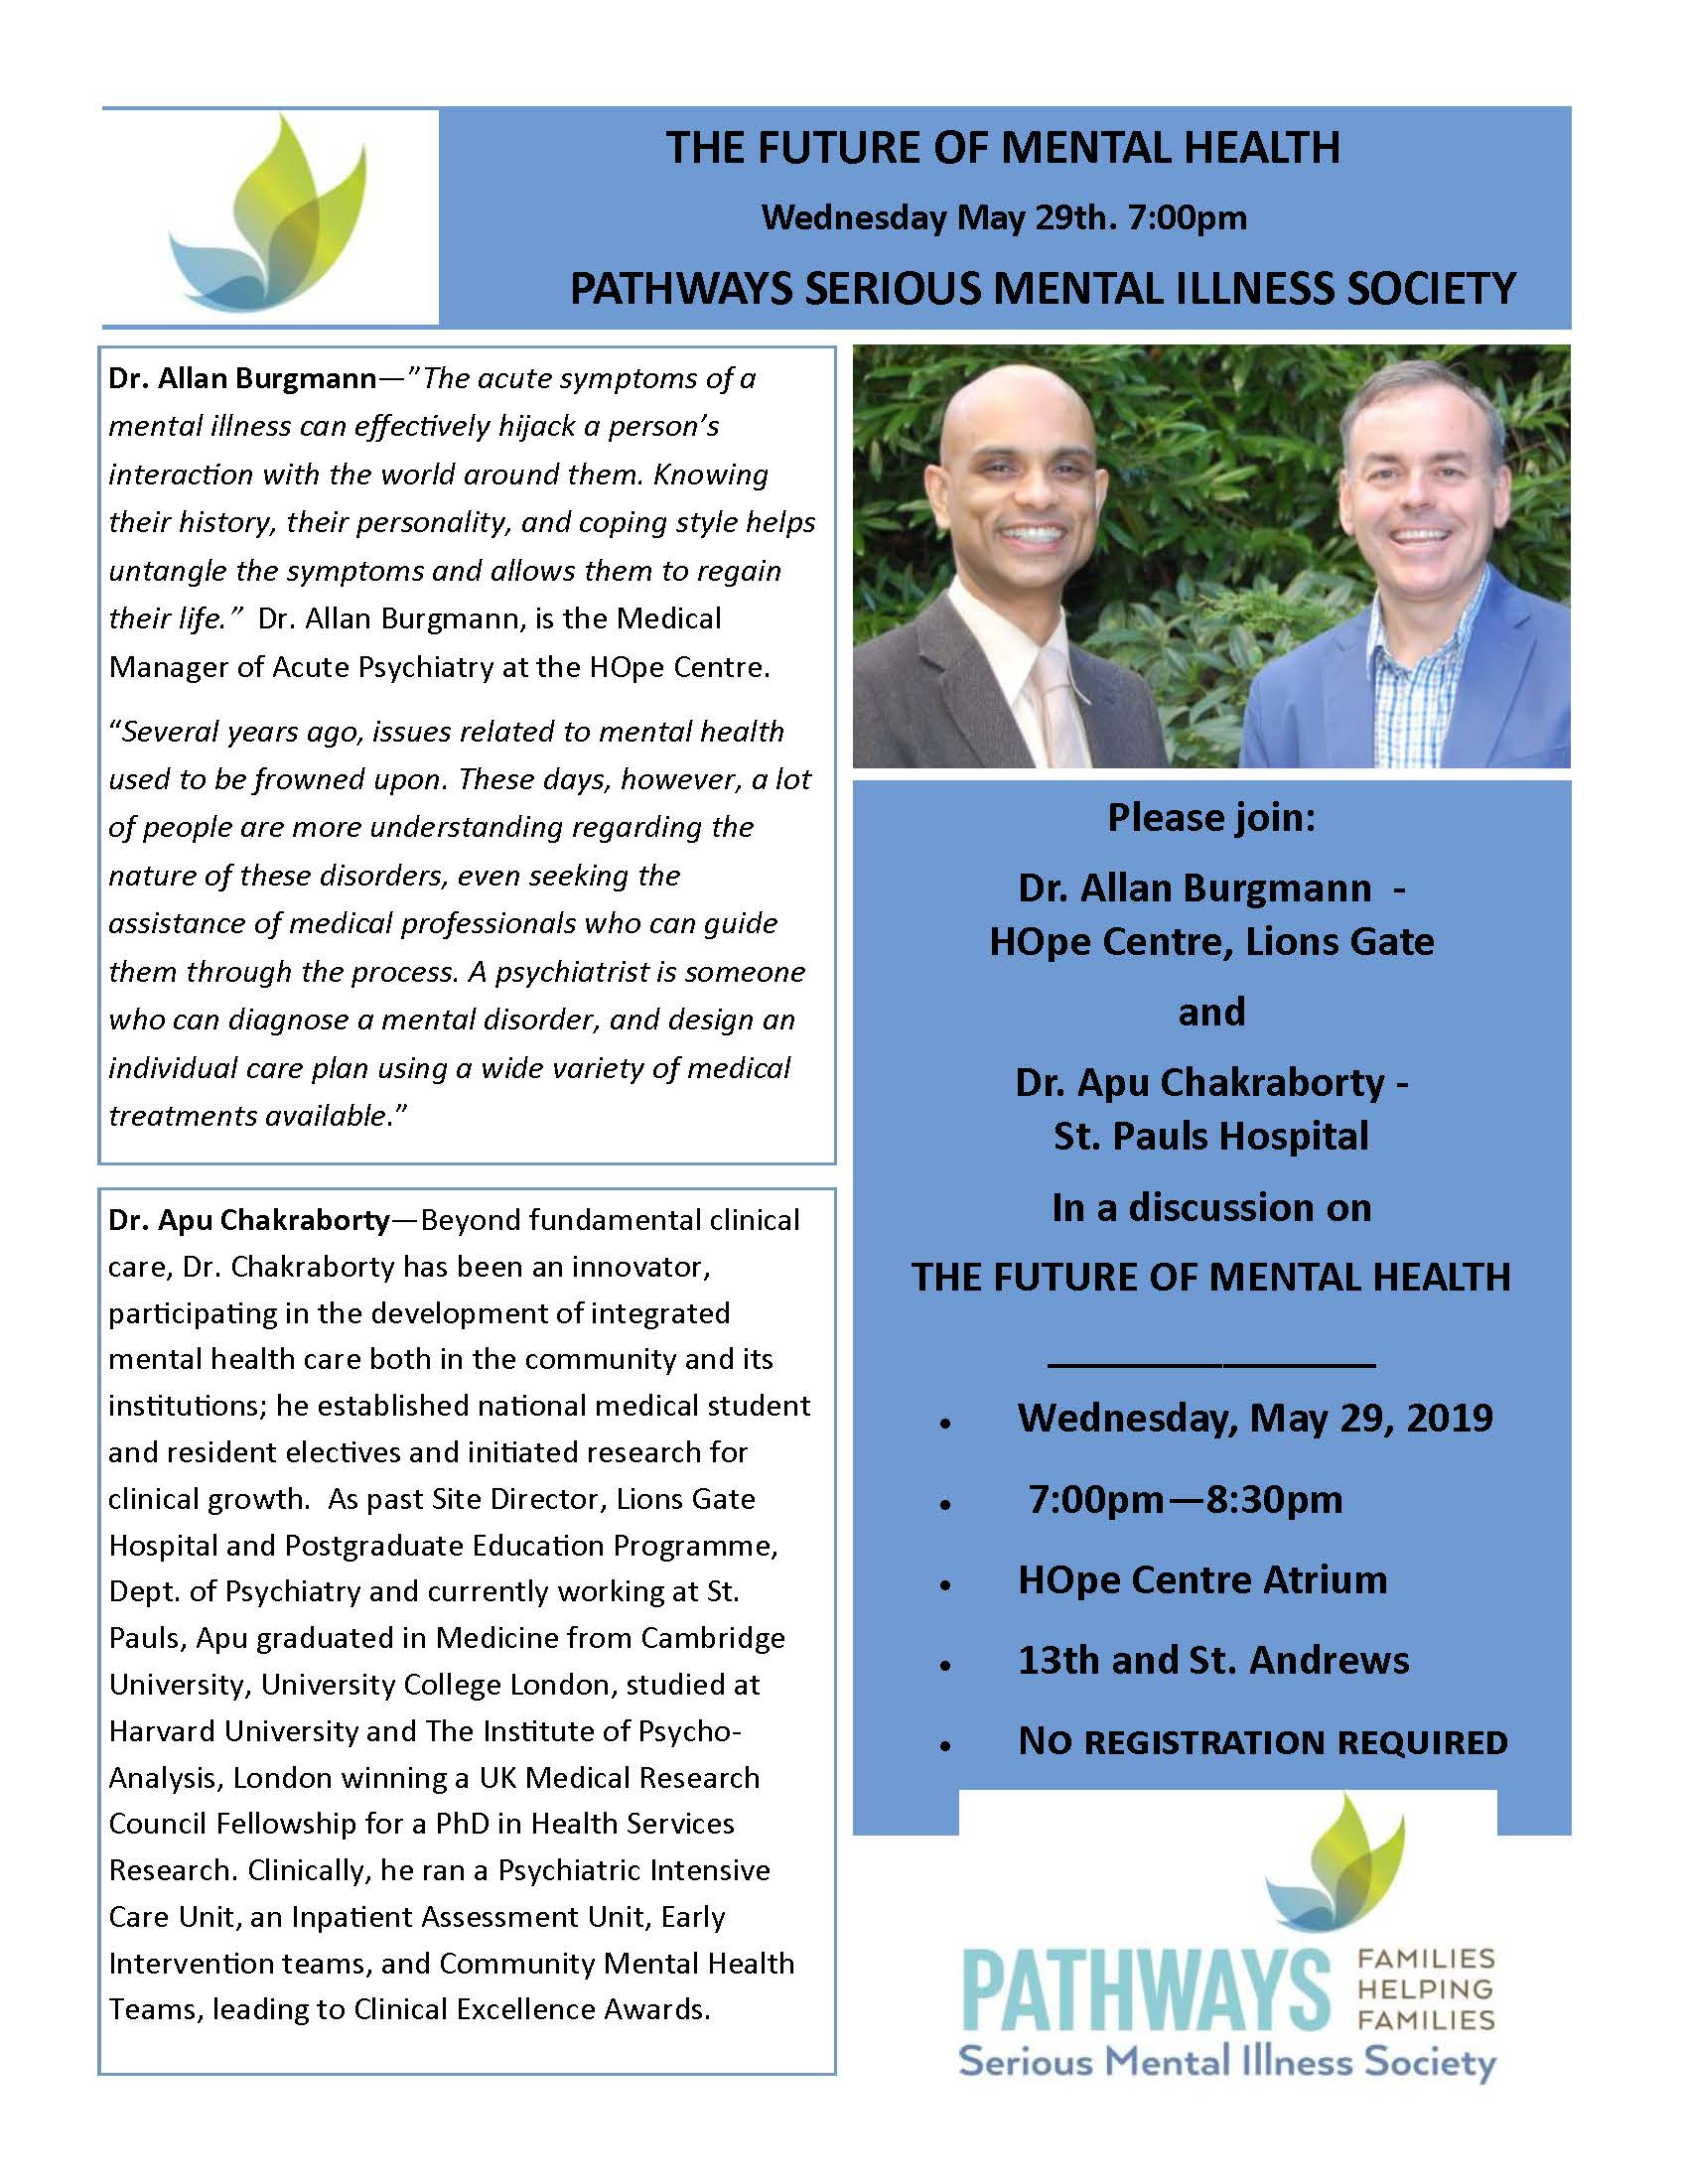 The Future Of Mental Health lecture